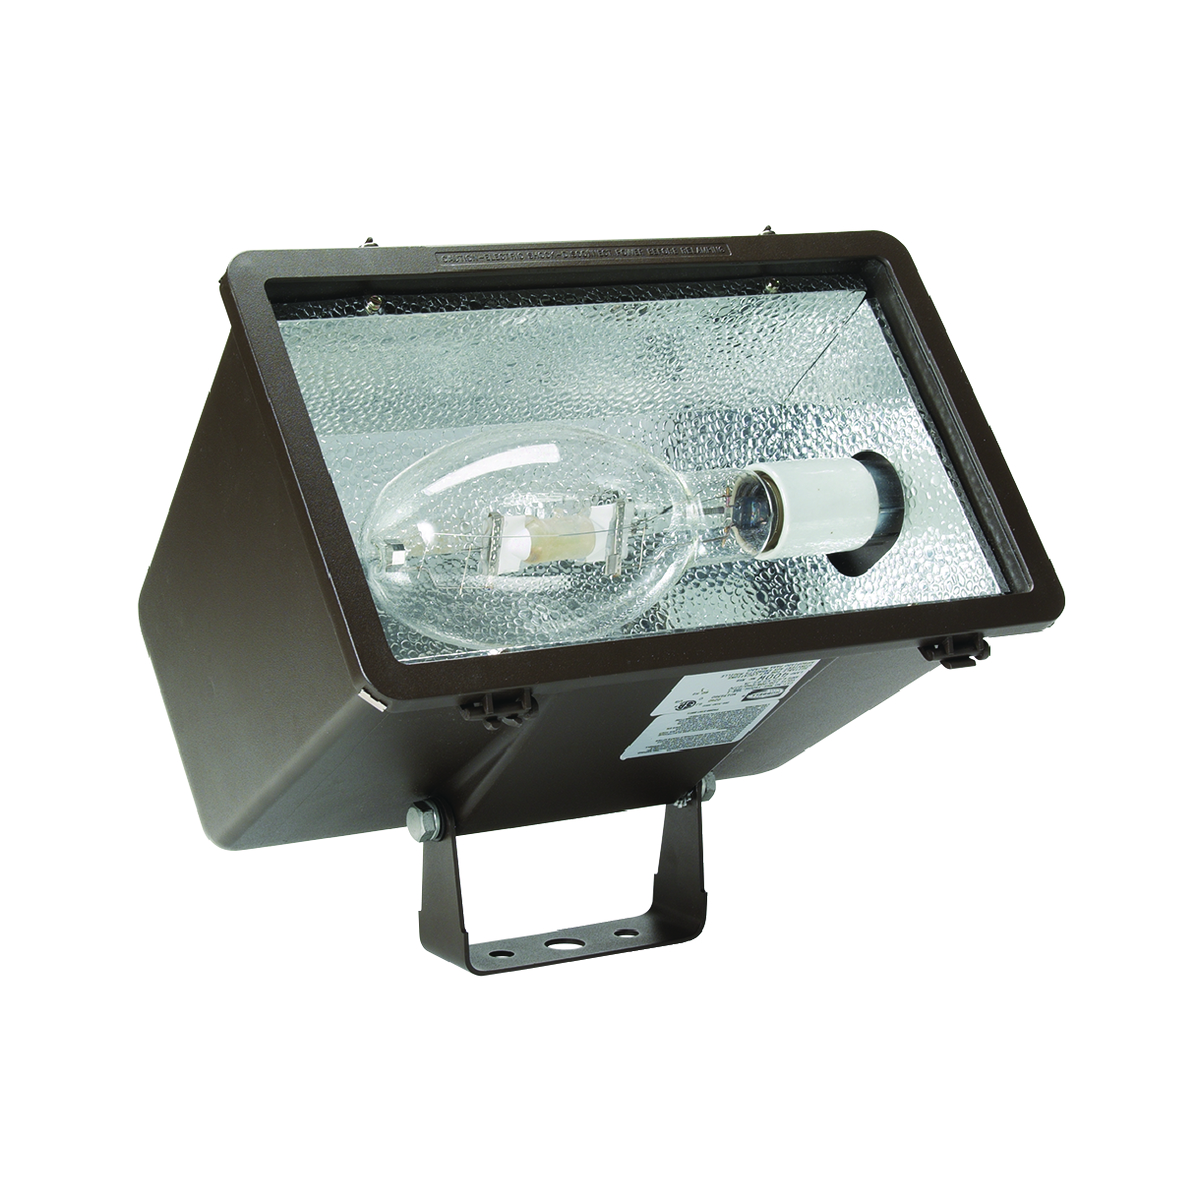 HBLMHS-Y400P8 FLDLGHT 400W PS QTAP WIDE YOKE W/LP BRZ, HUBBELL LIGHTING